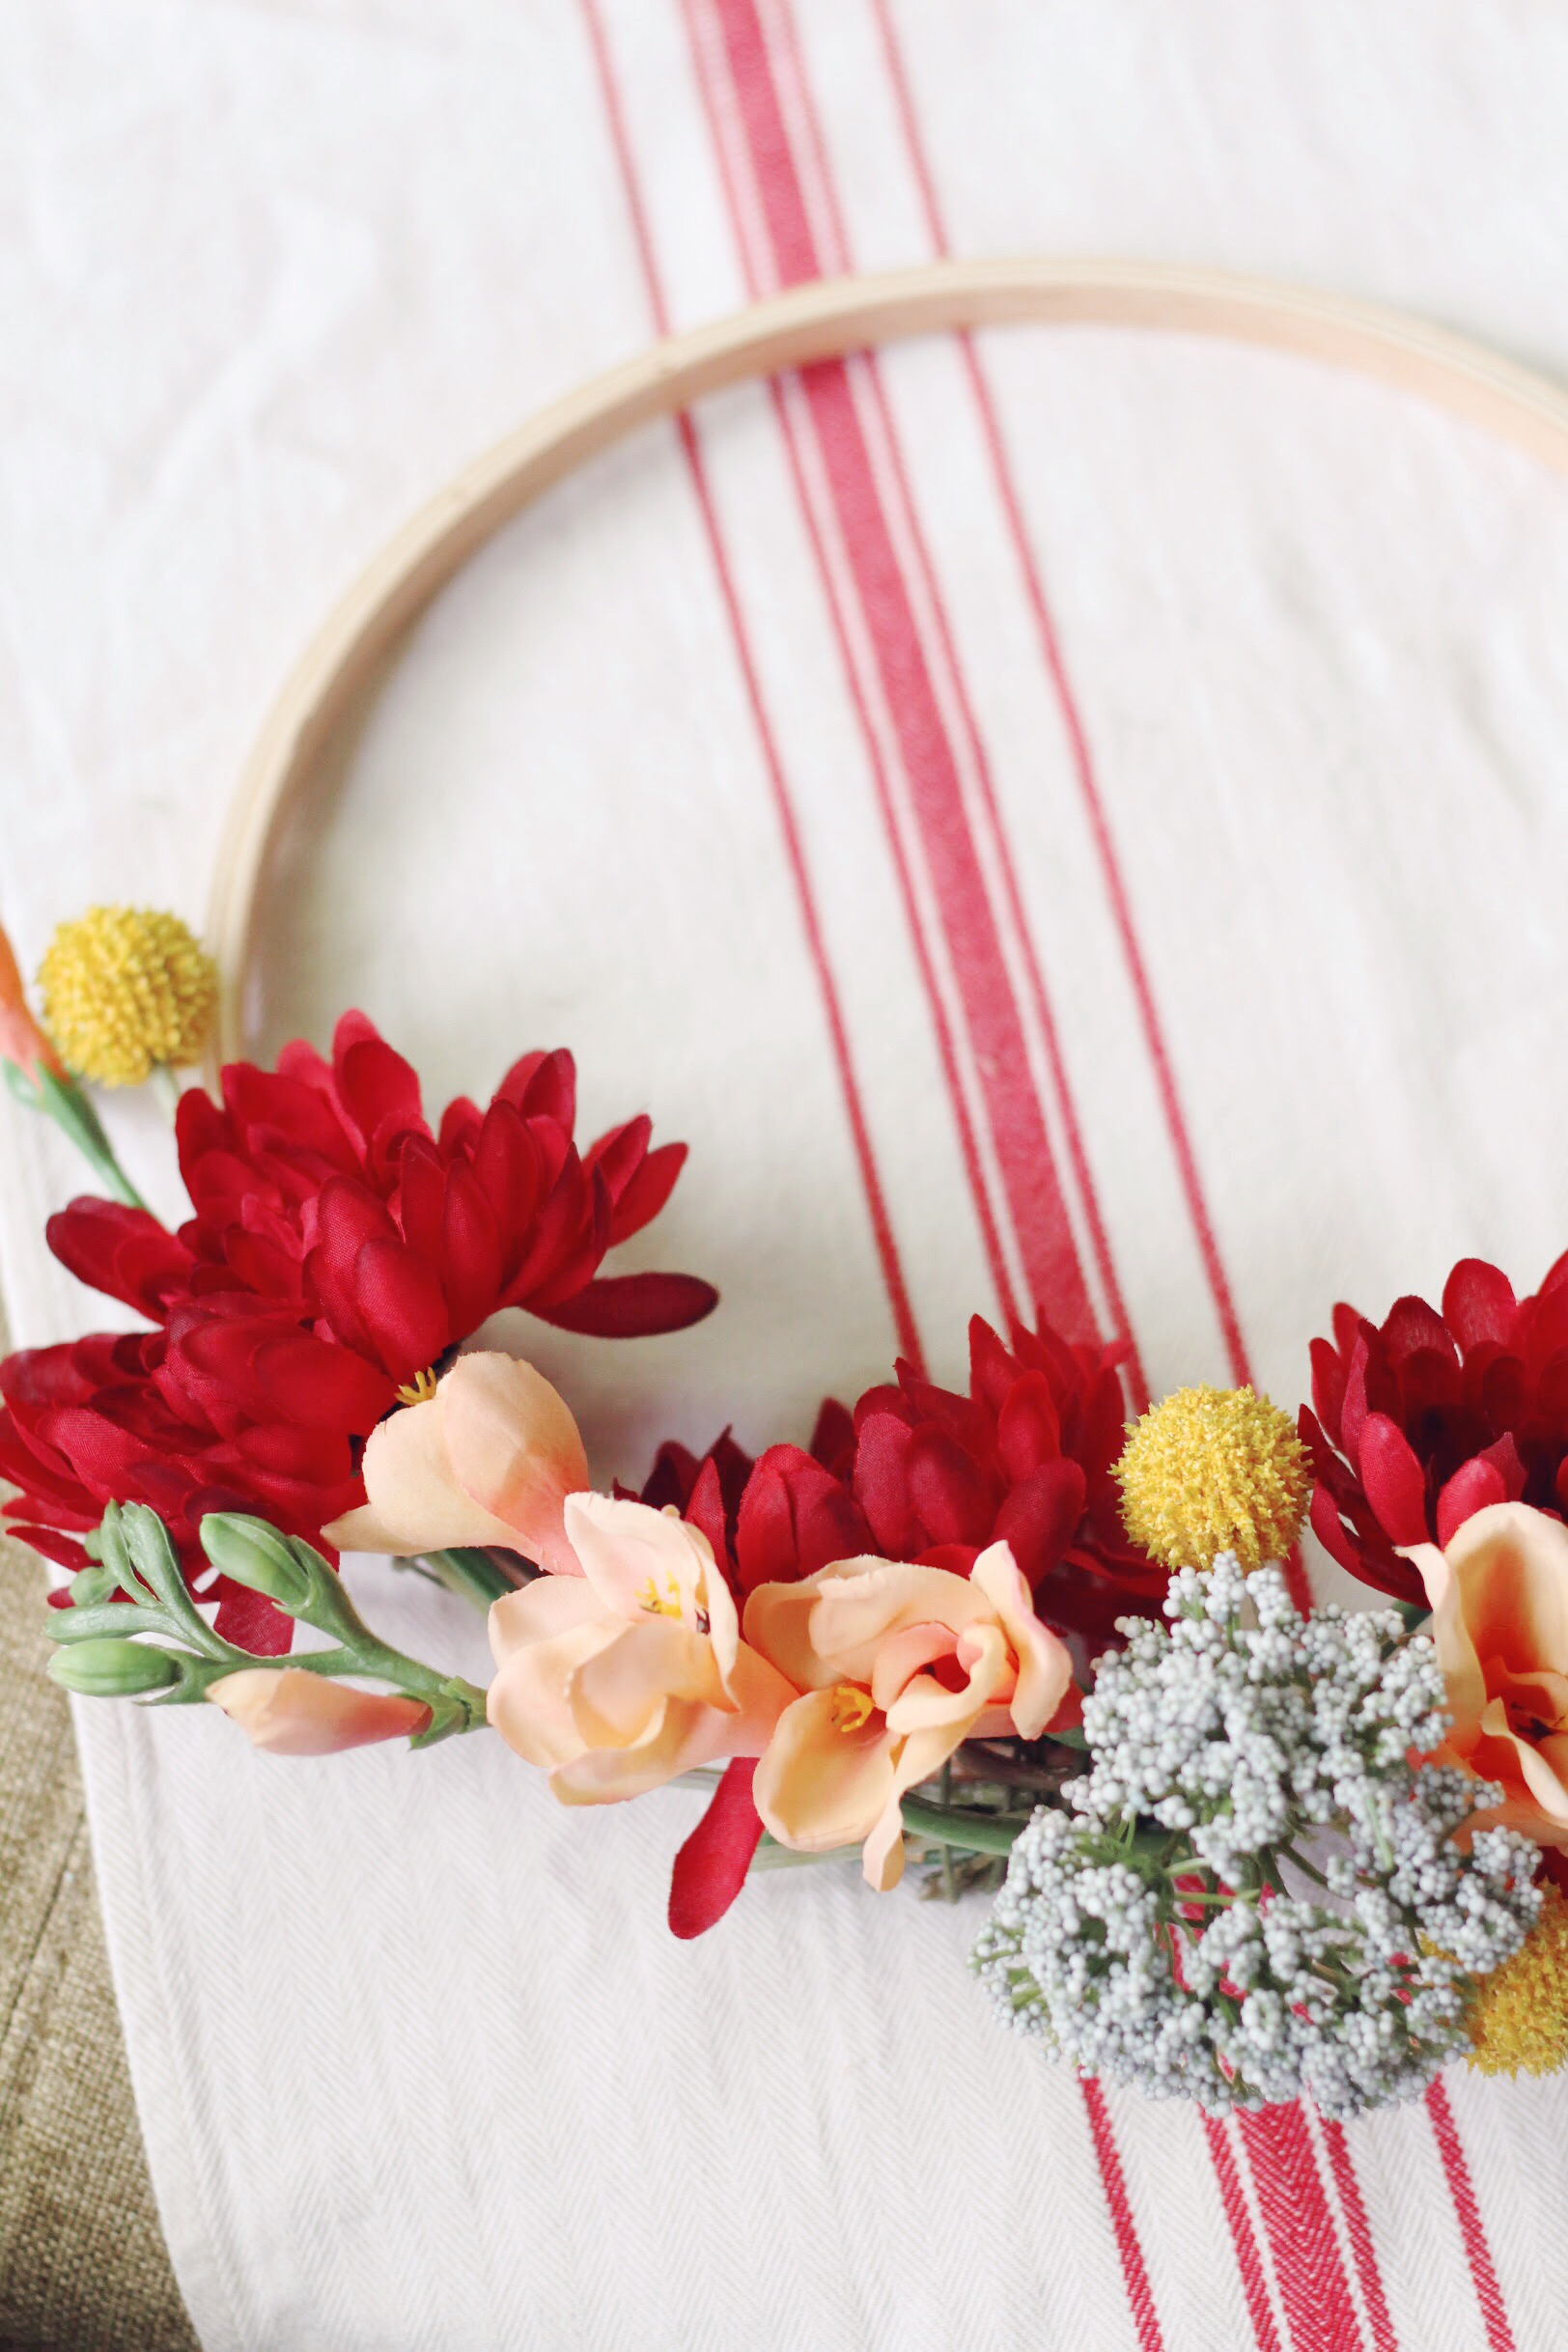 DIY Summer Wreath Tutorial